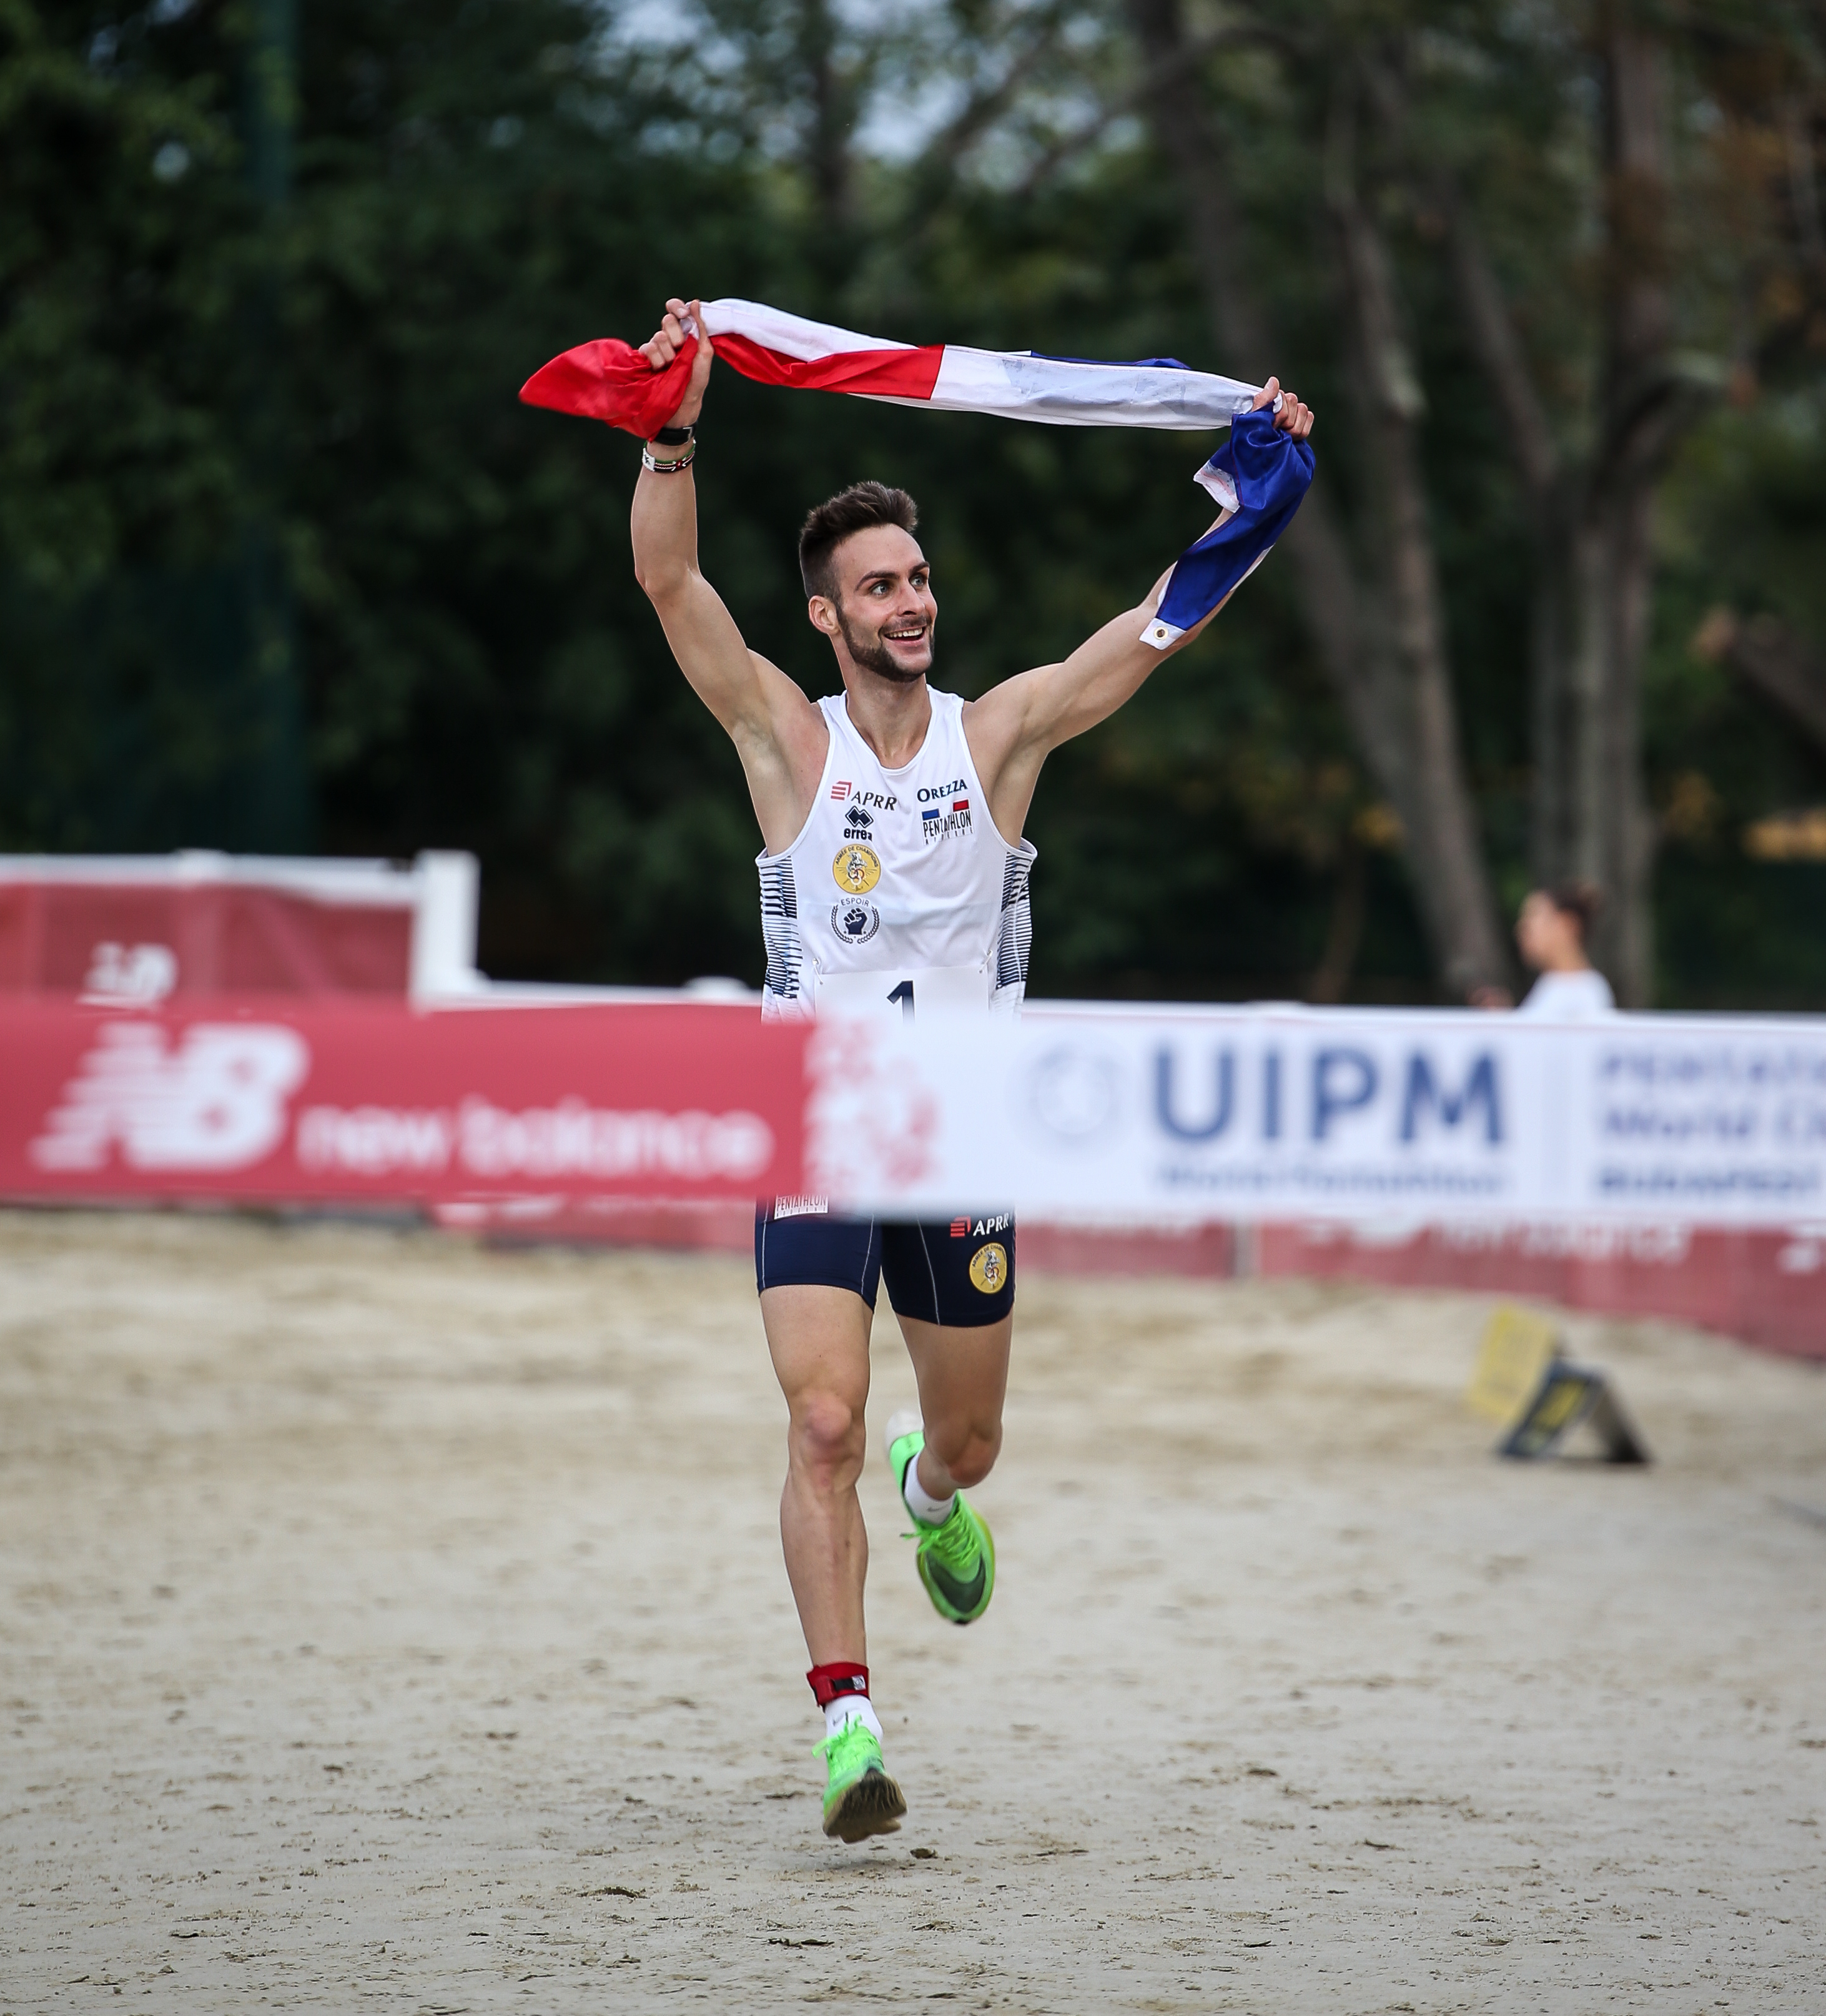 Valentin Belaud of France wins gold at the UIPM 2019 Pentathlon World Championships in Budapest